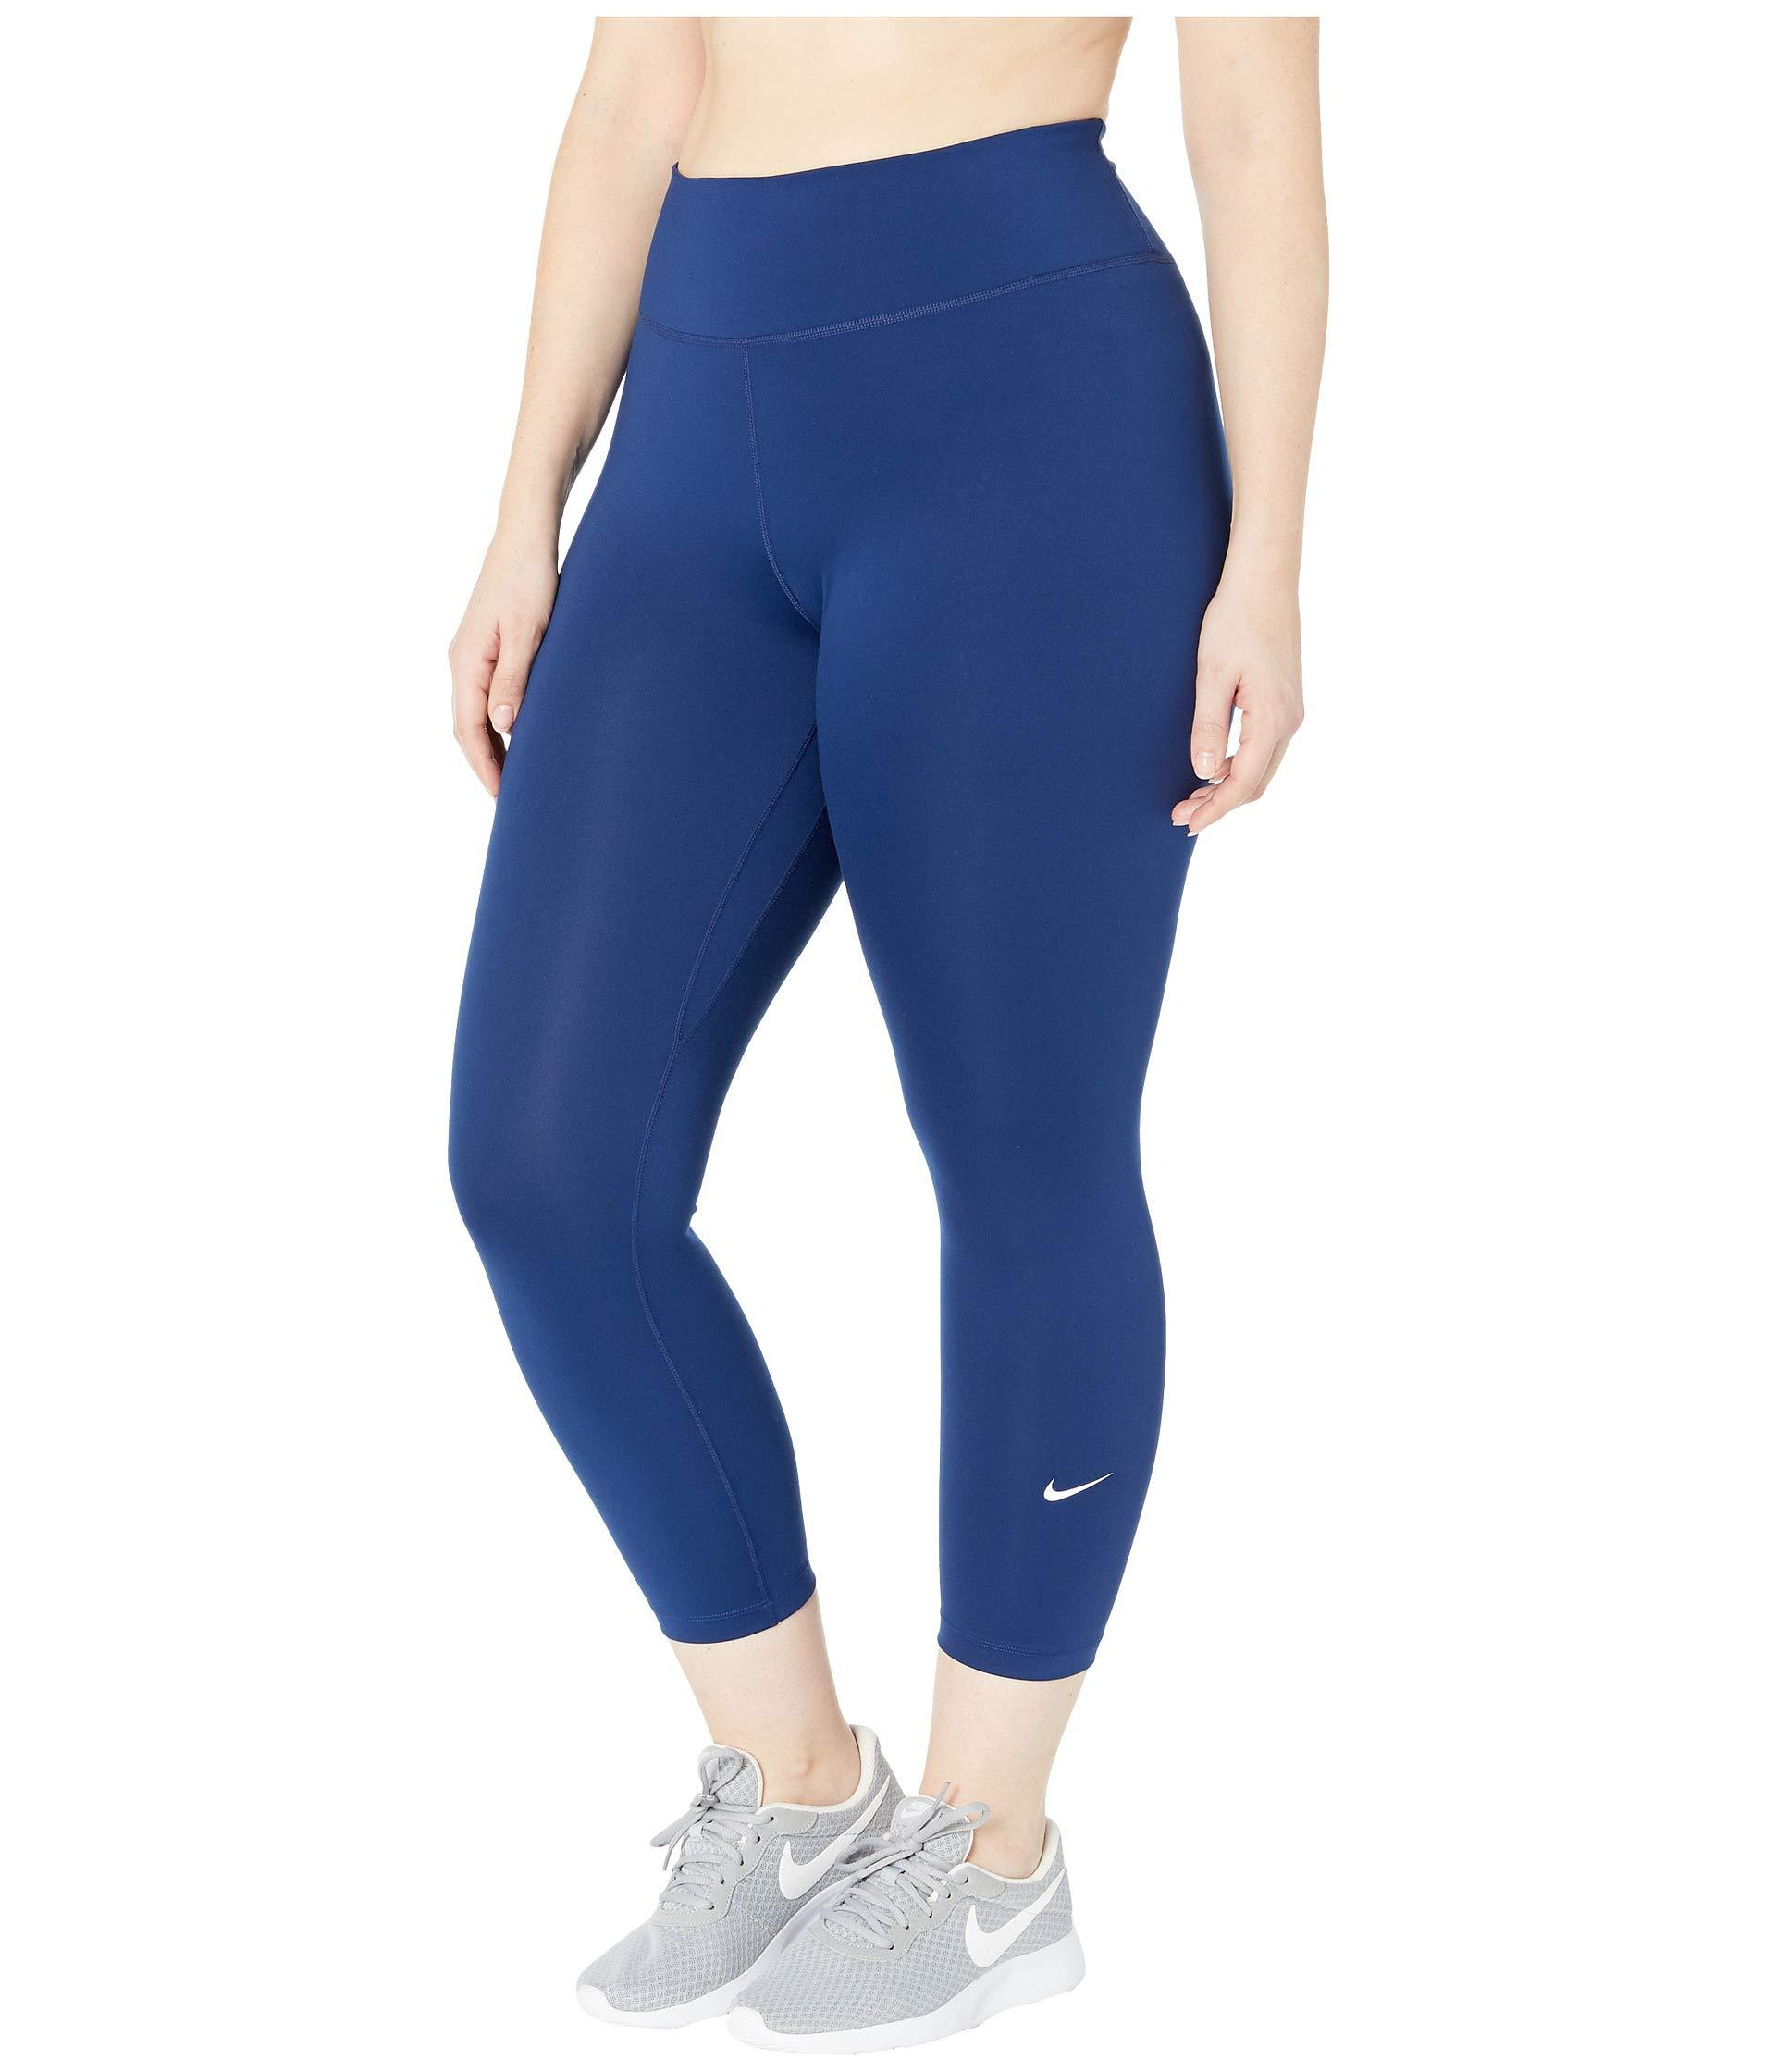 c878c7ac82843 Lyst - Nike One Crop Pants (sizes 1x-3x) (el Dorado/black) Women's Casual  Pants in Blue